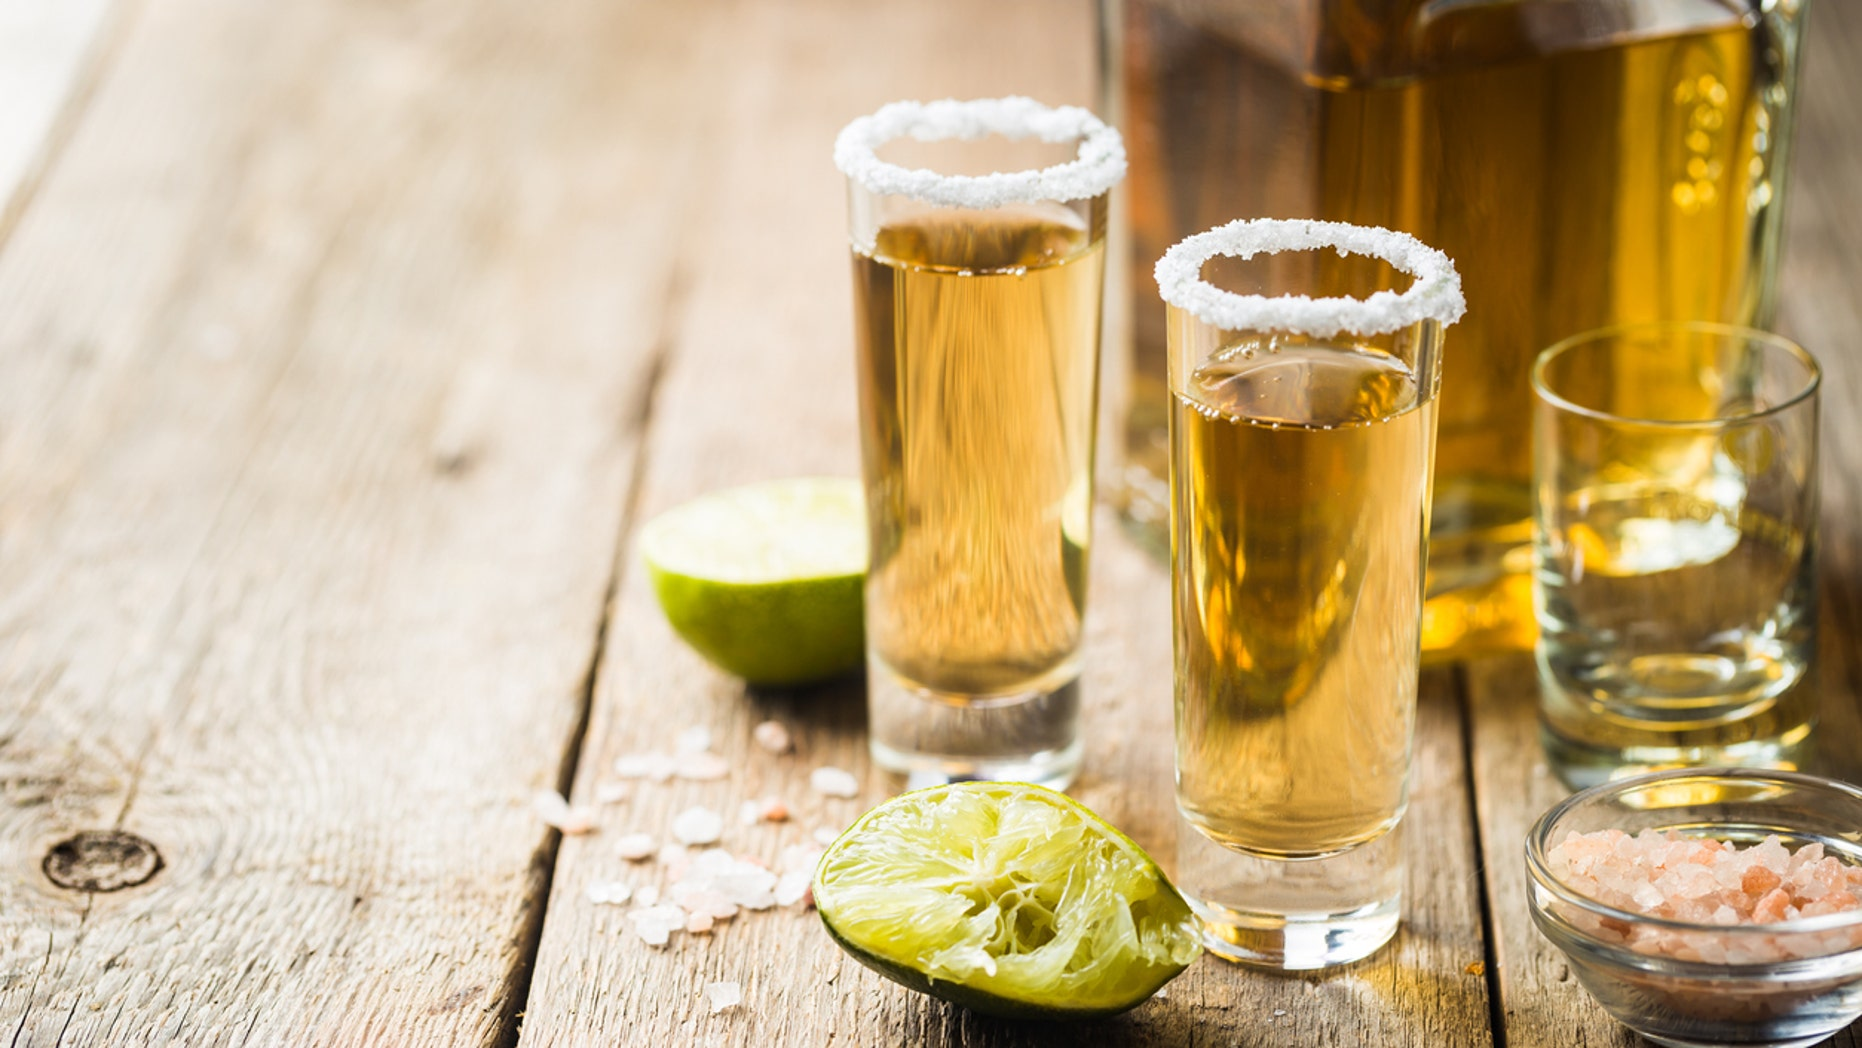 The study is from 2014, but the idea of tequila as a secret for weight loss has recently been making the rounds again.